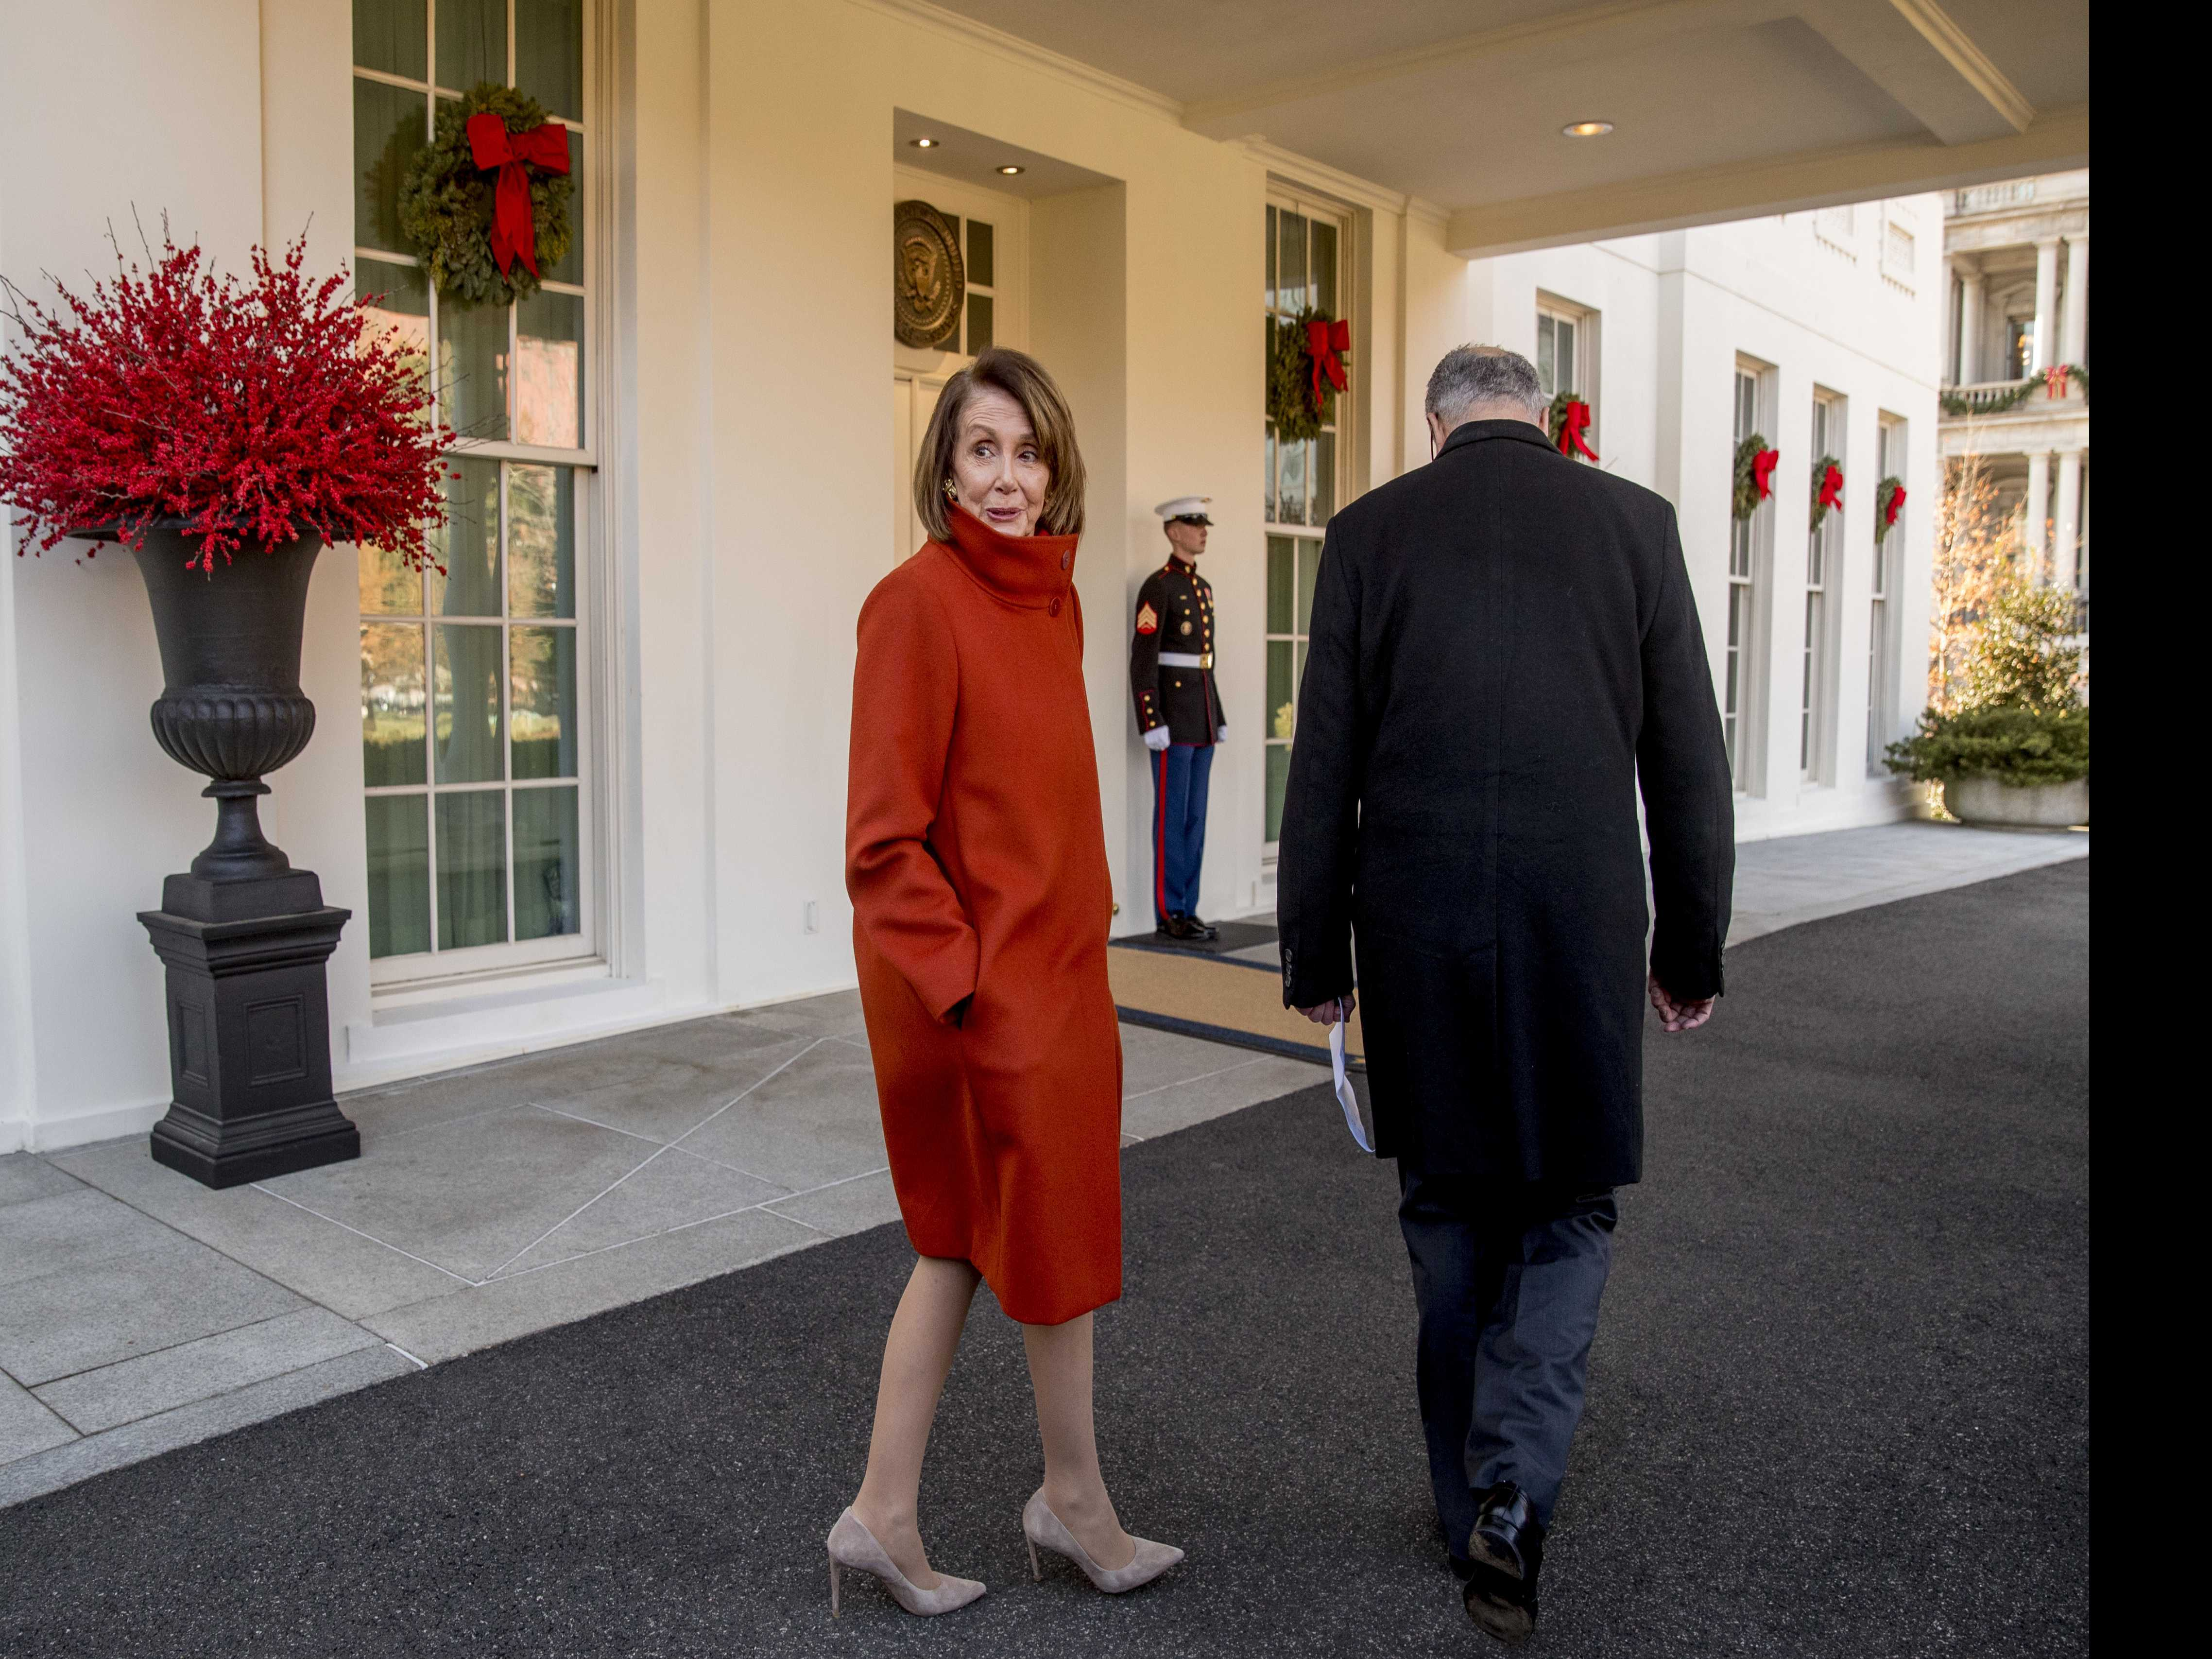 Pelosi Gives Trump an Earful, Questions 'Manhood' in Private